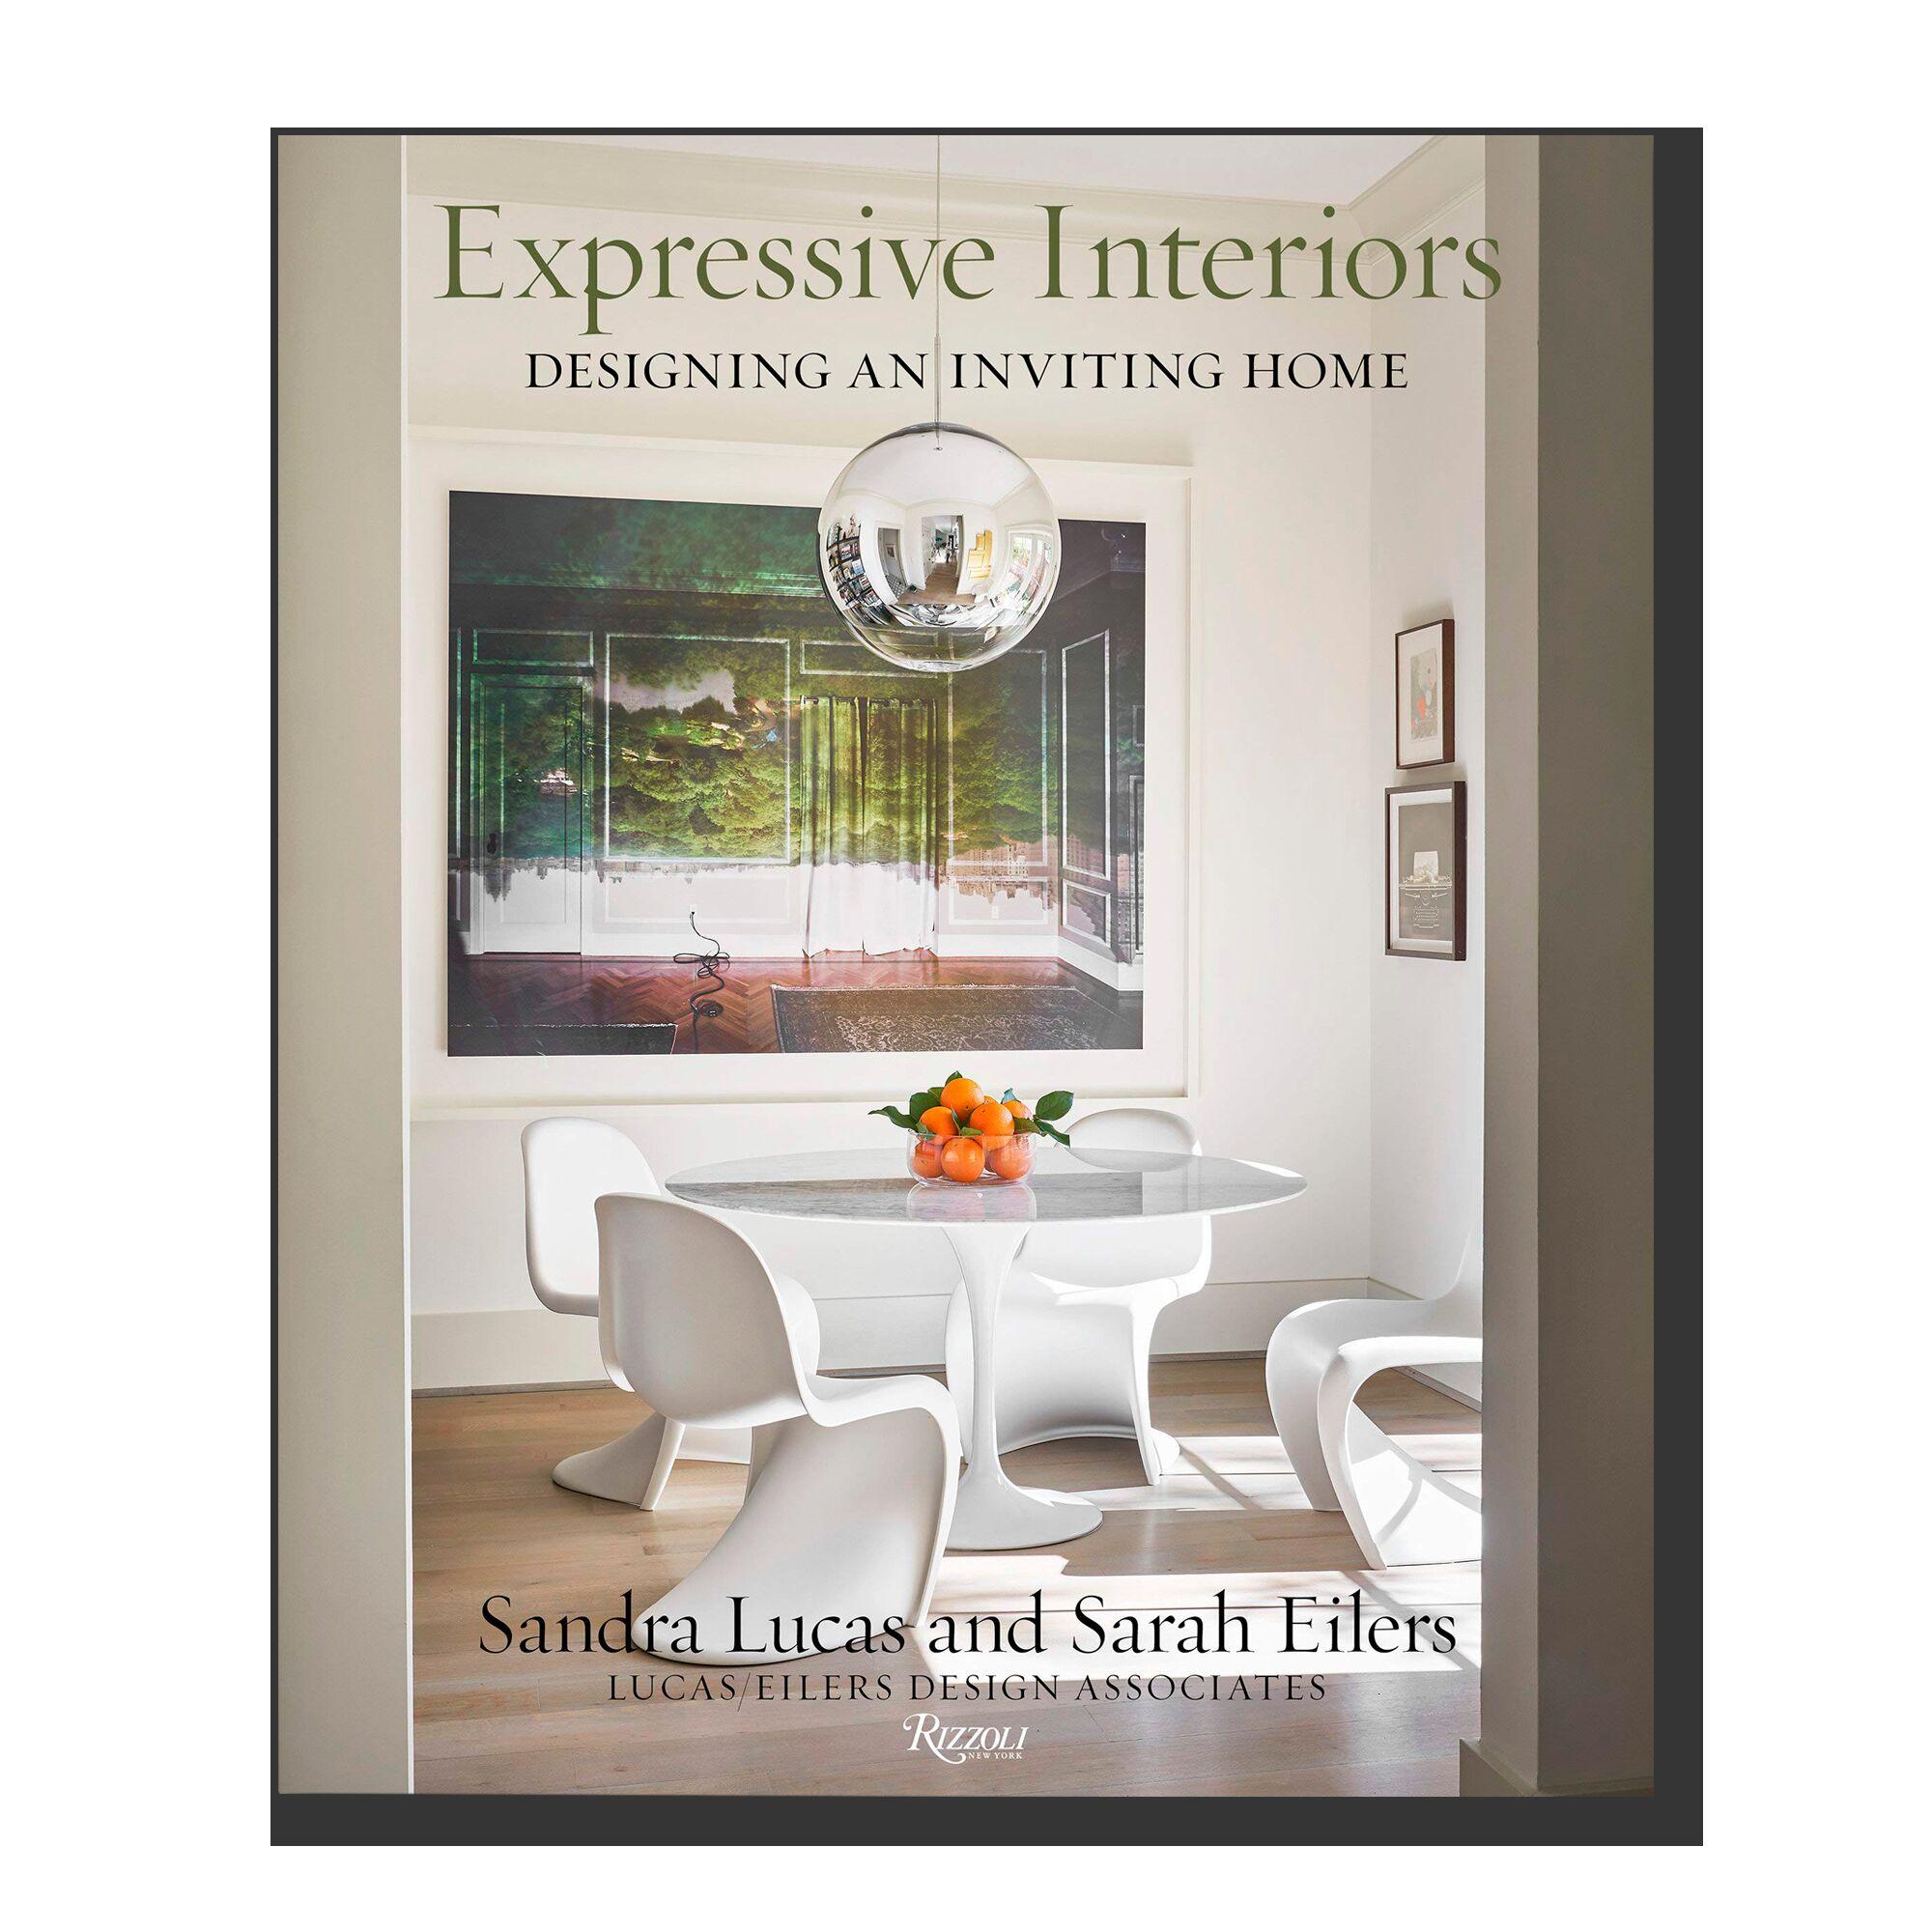 Expressive Interiors: Designing An Inviting Home